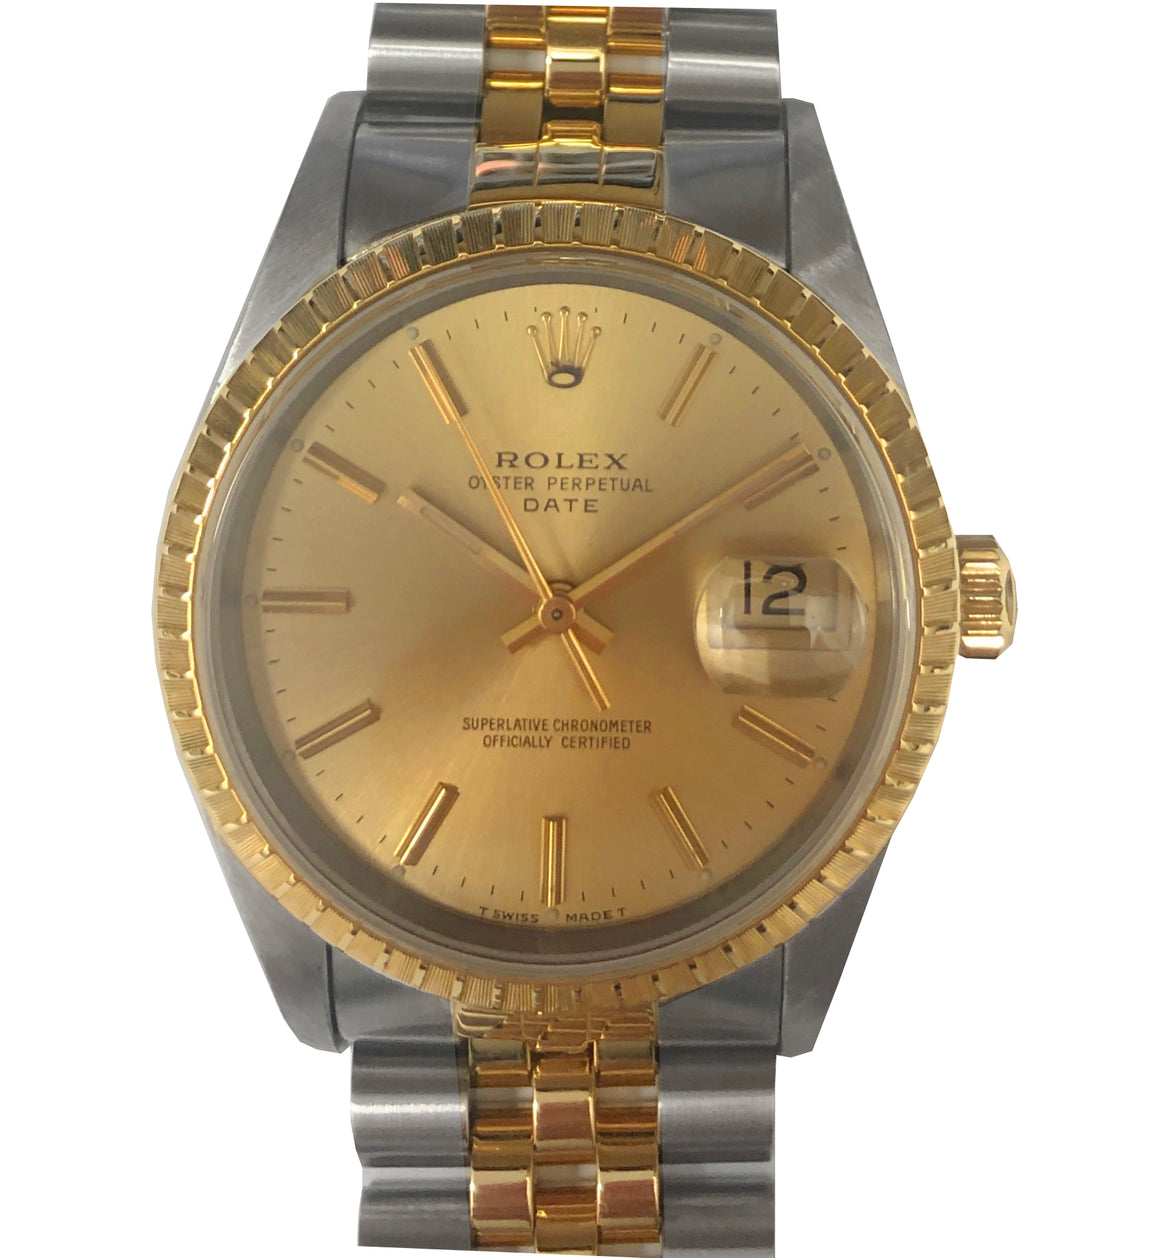 Rolex Steel & Gold Date, Champagne Dial. Ref: 15233